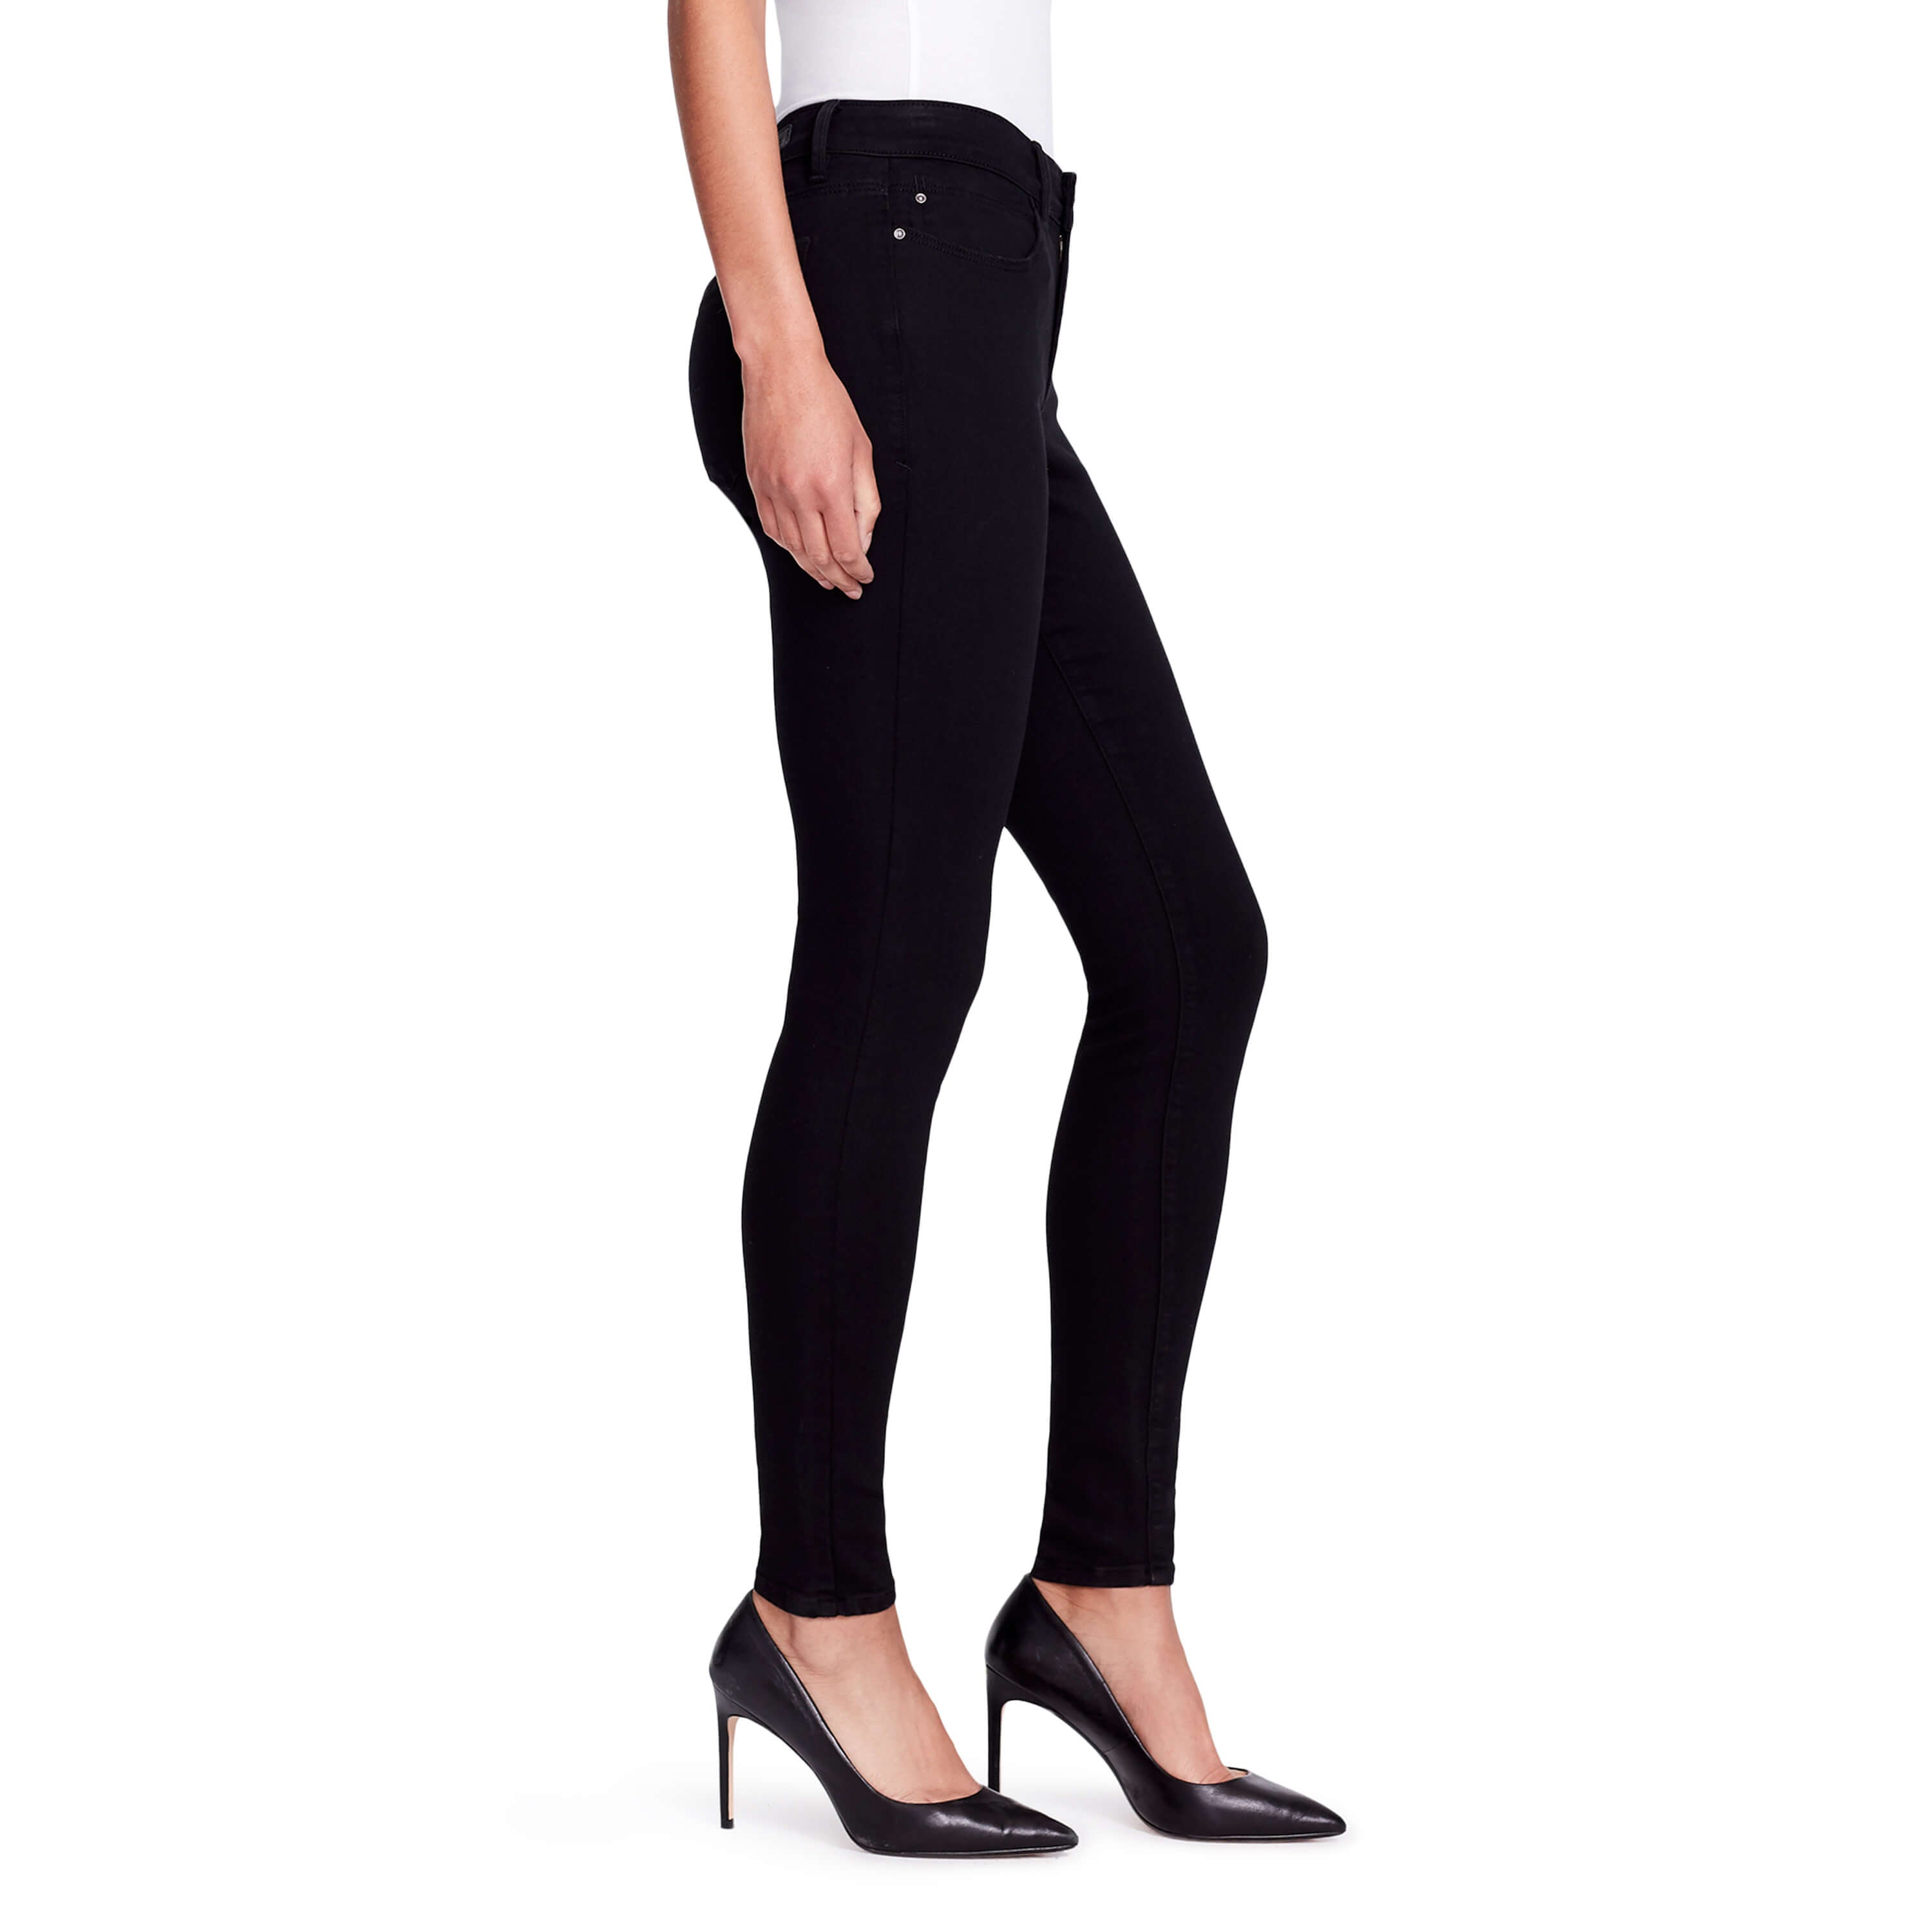 a51a9722b5d10 Shop Skinnygirl - The Skinny Jeans - Dante Black Rinse